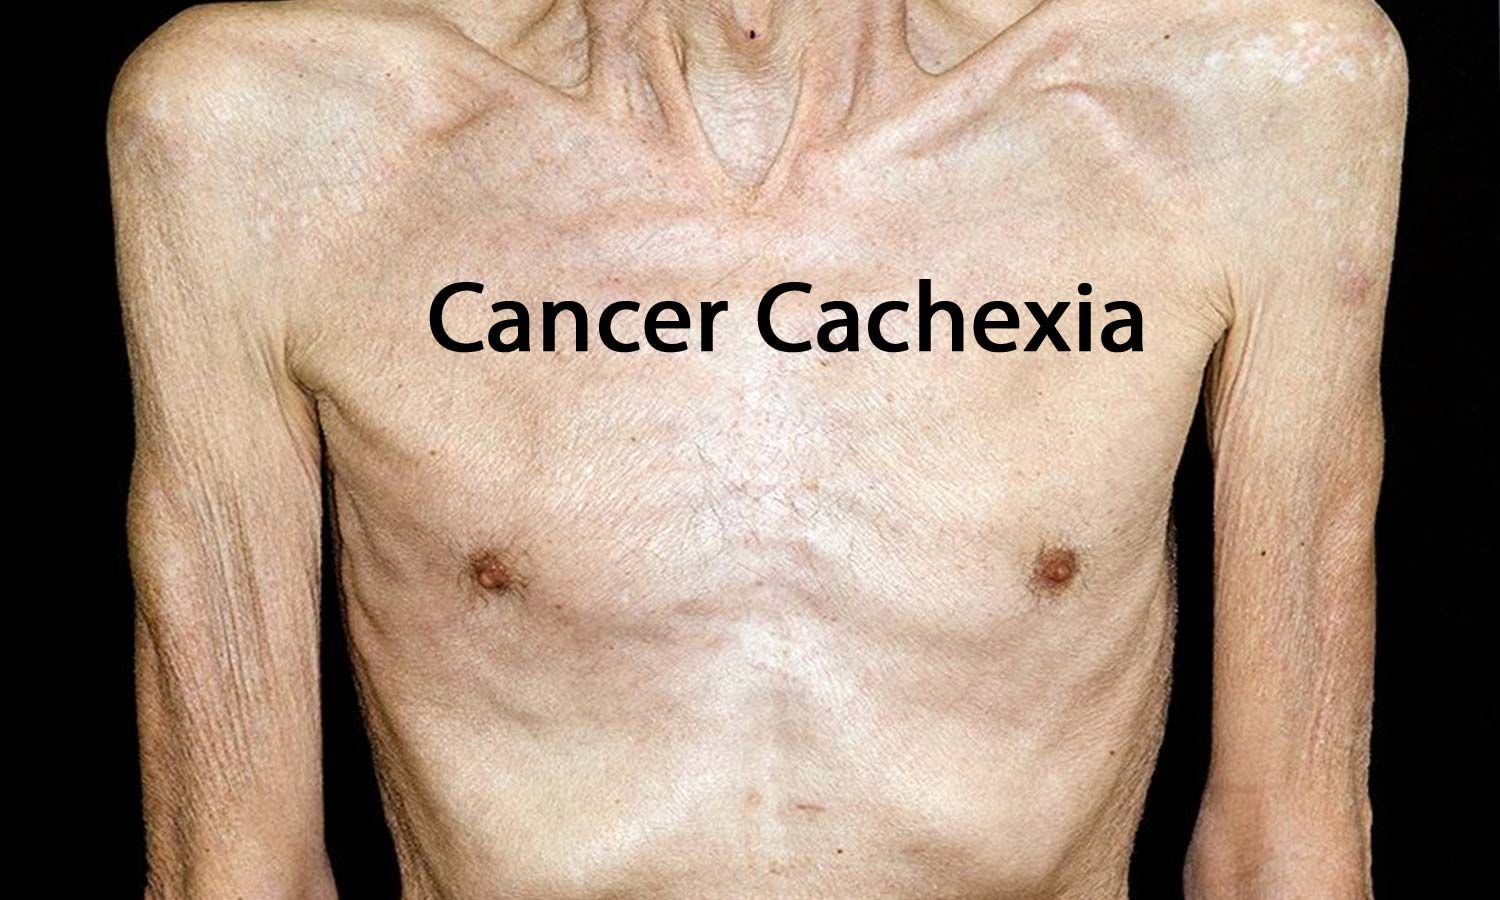 Management of Cancer Cachexia: ASCO Guideline